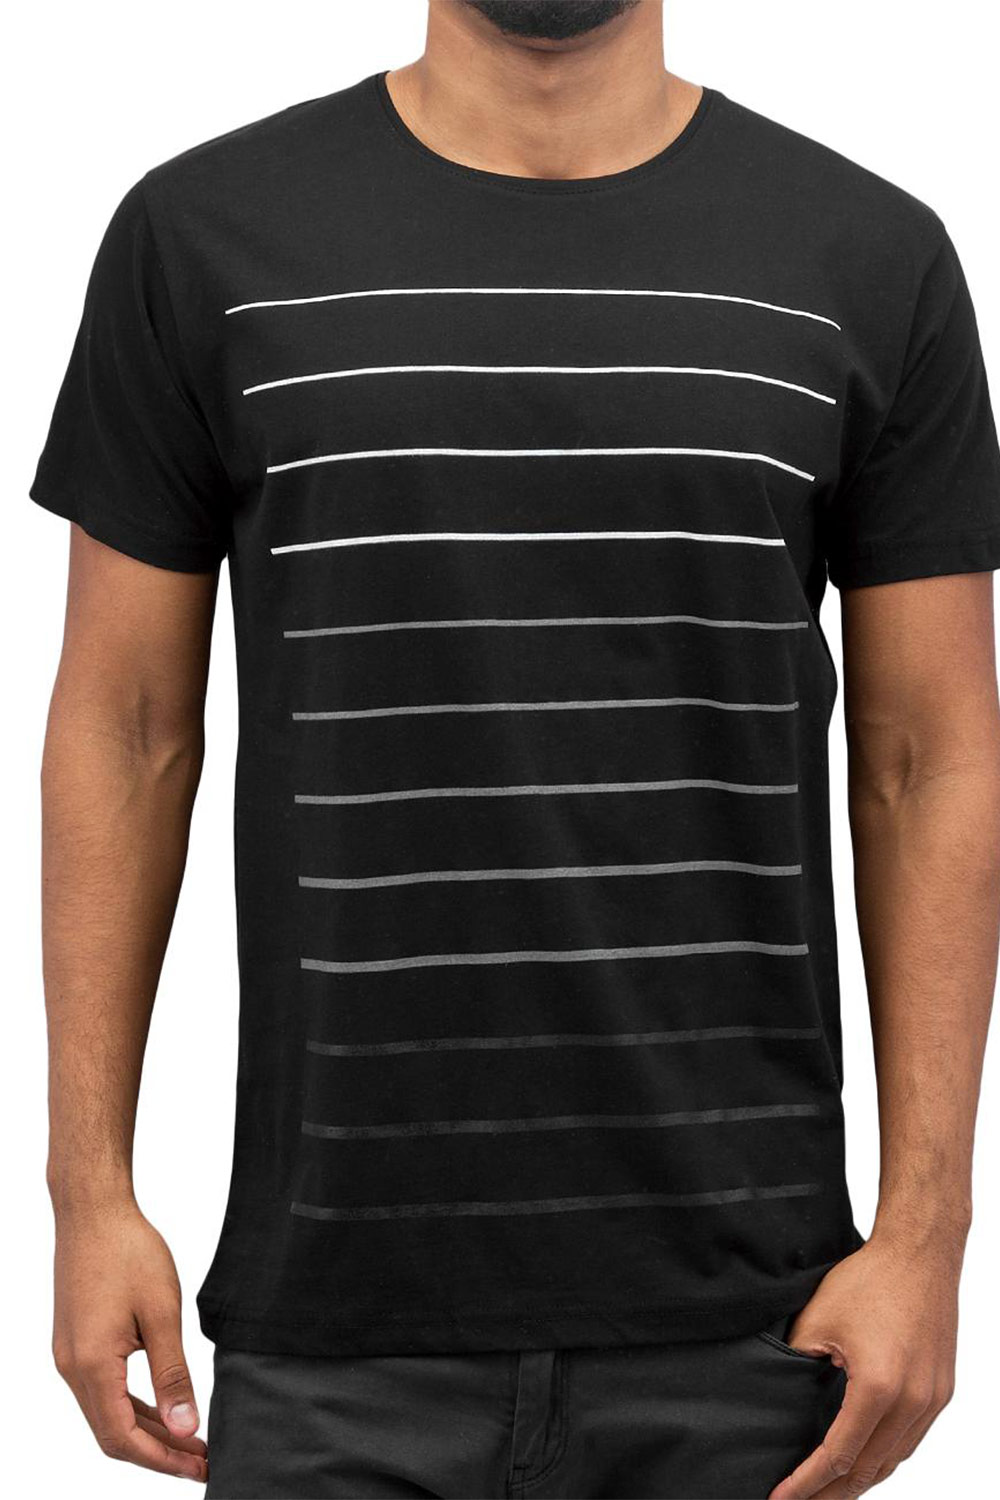 CAZZY CLANG Super Stripes T-Shirt Black auf oboy.de